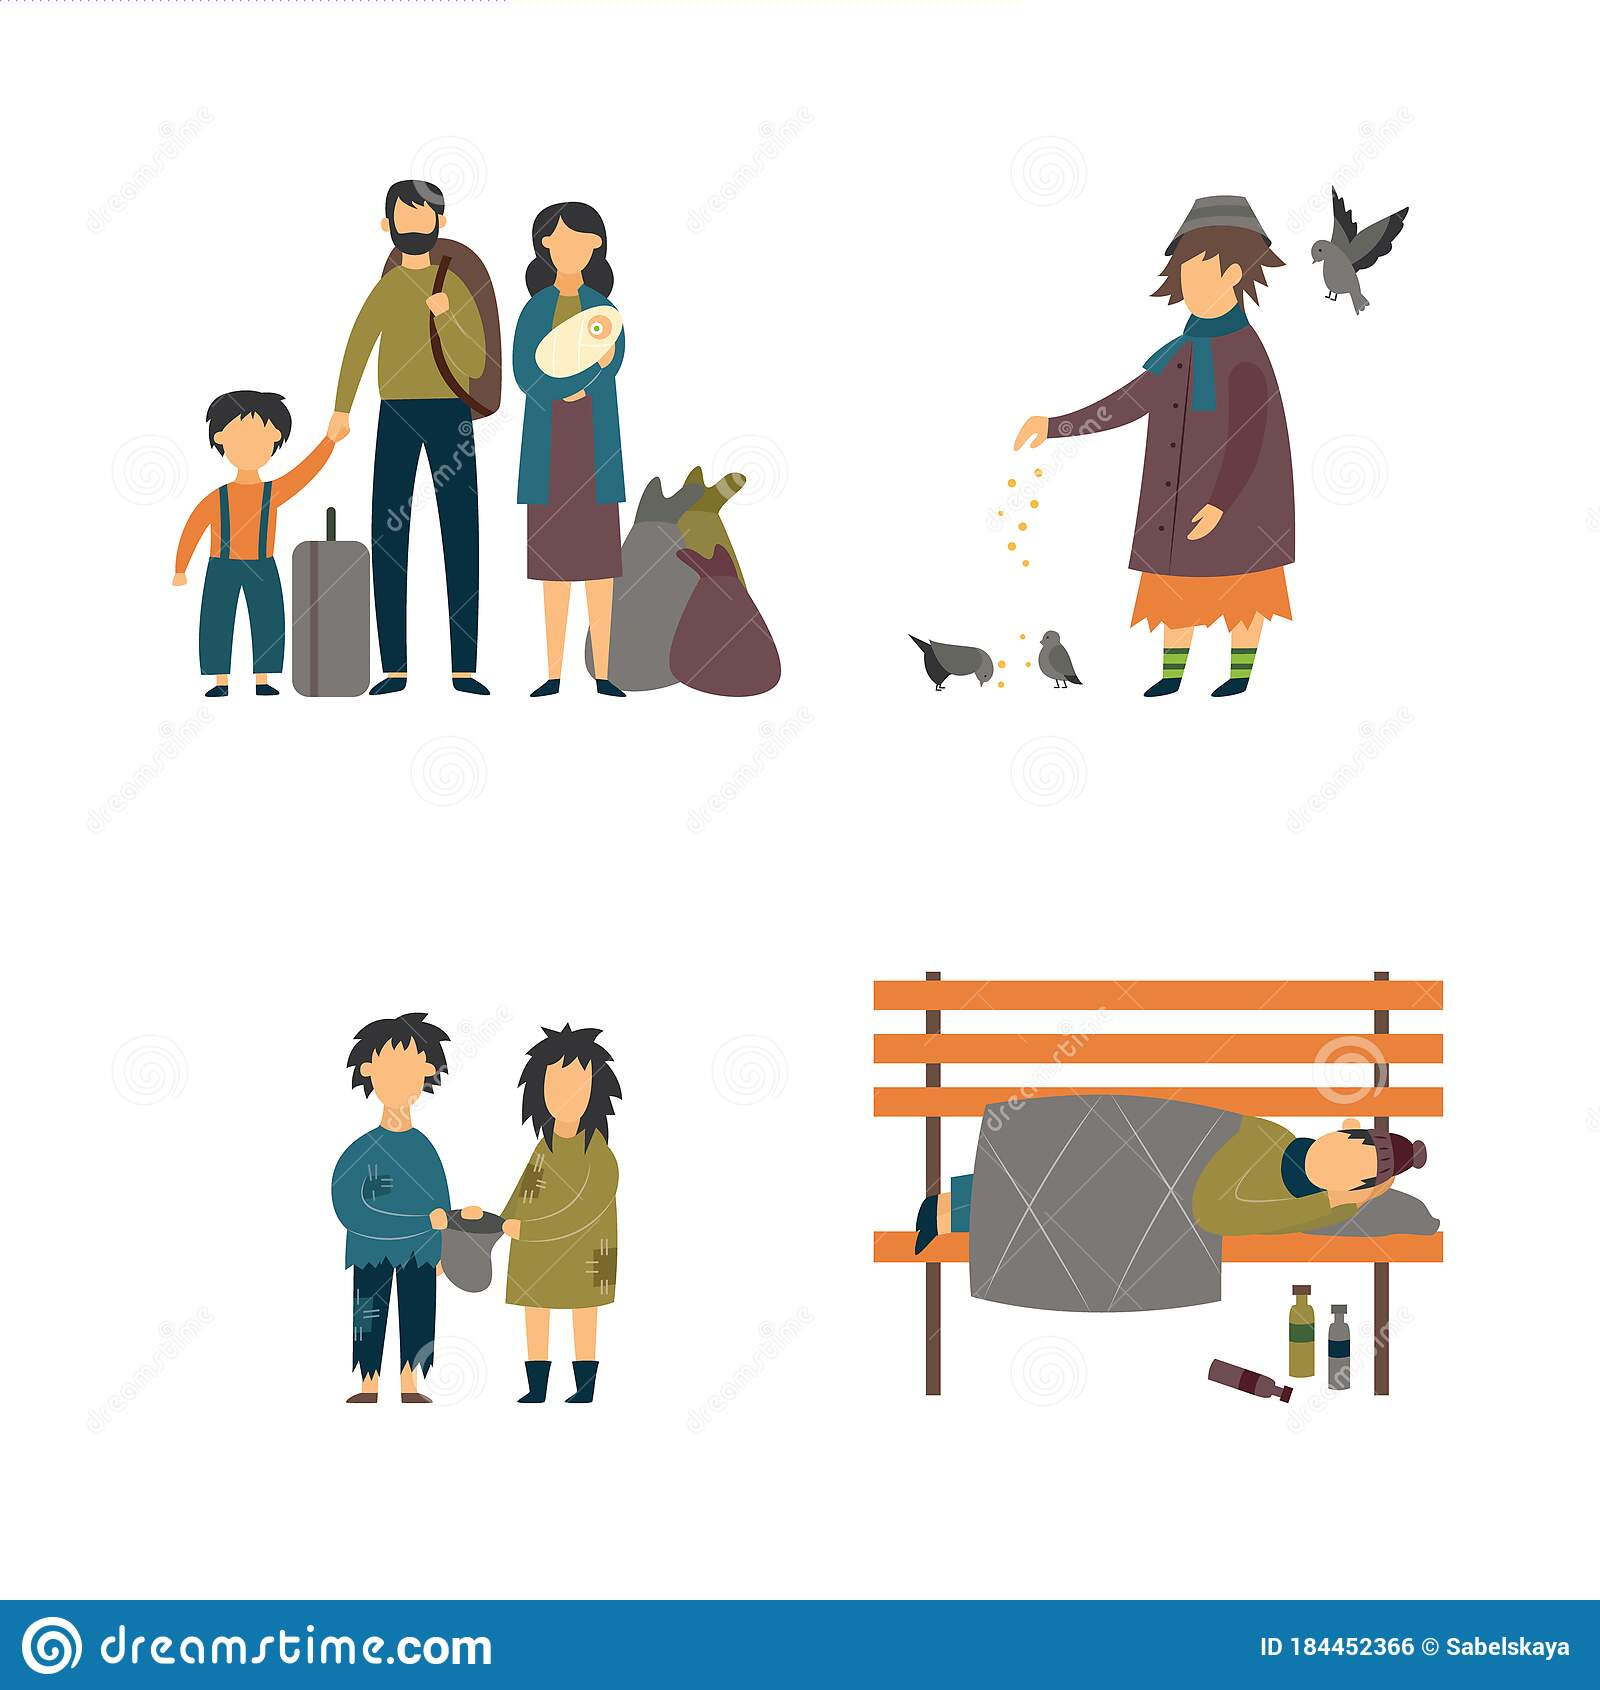 Homeless Children Needing For Help Royalty Free Cliparts, Vectors, And  Stock Illustration. Image 87434390.